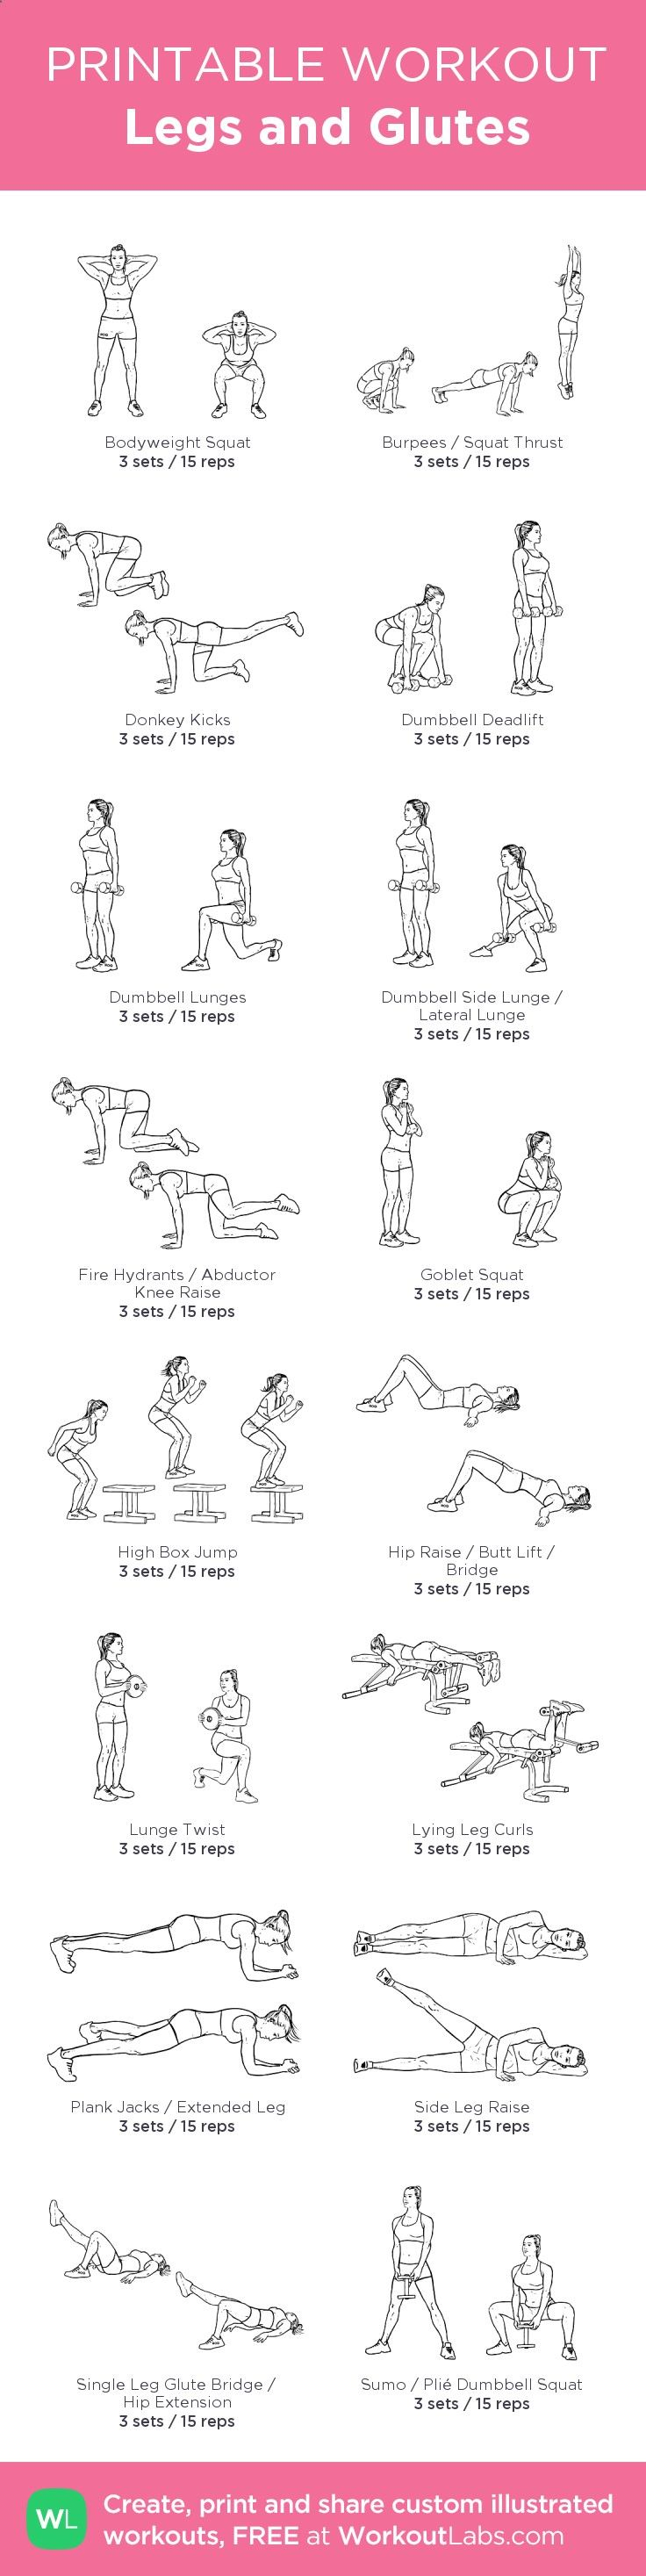 Legs and Glutes – my custom workout created at WorkoutLabs.com • Click through to download as printable PDF! #customworkout